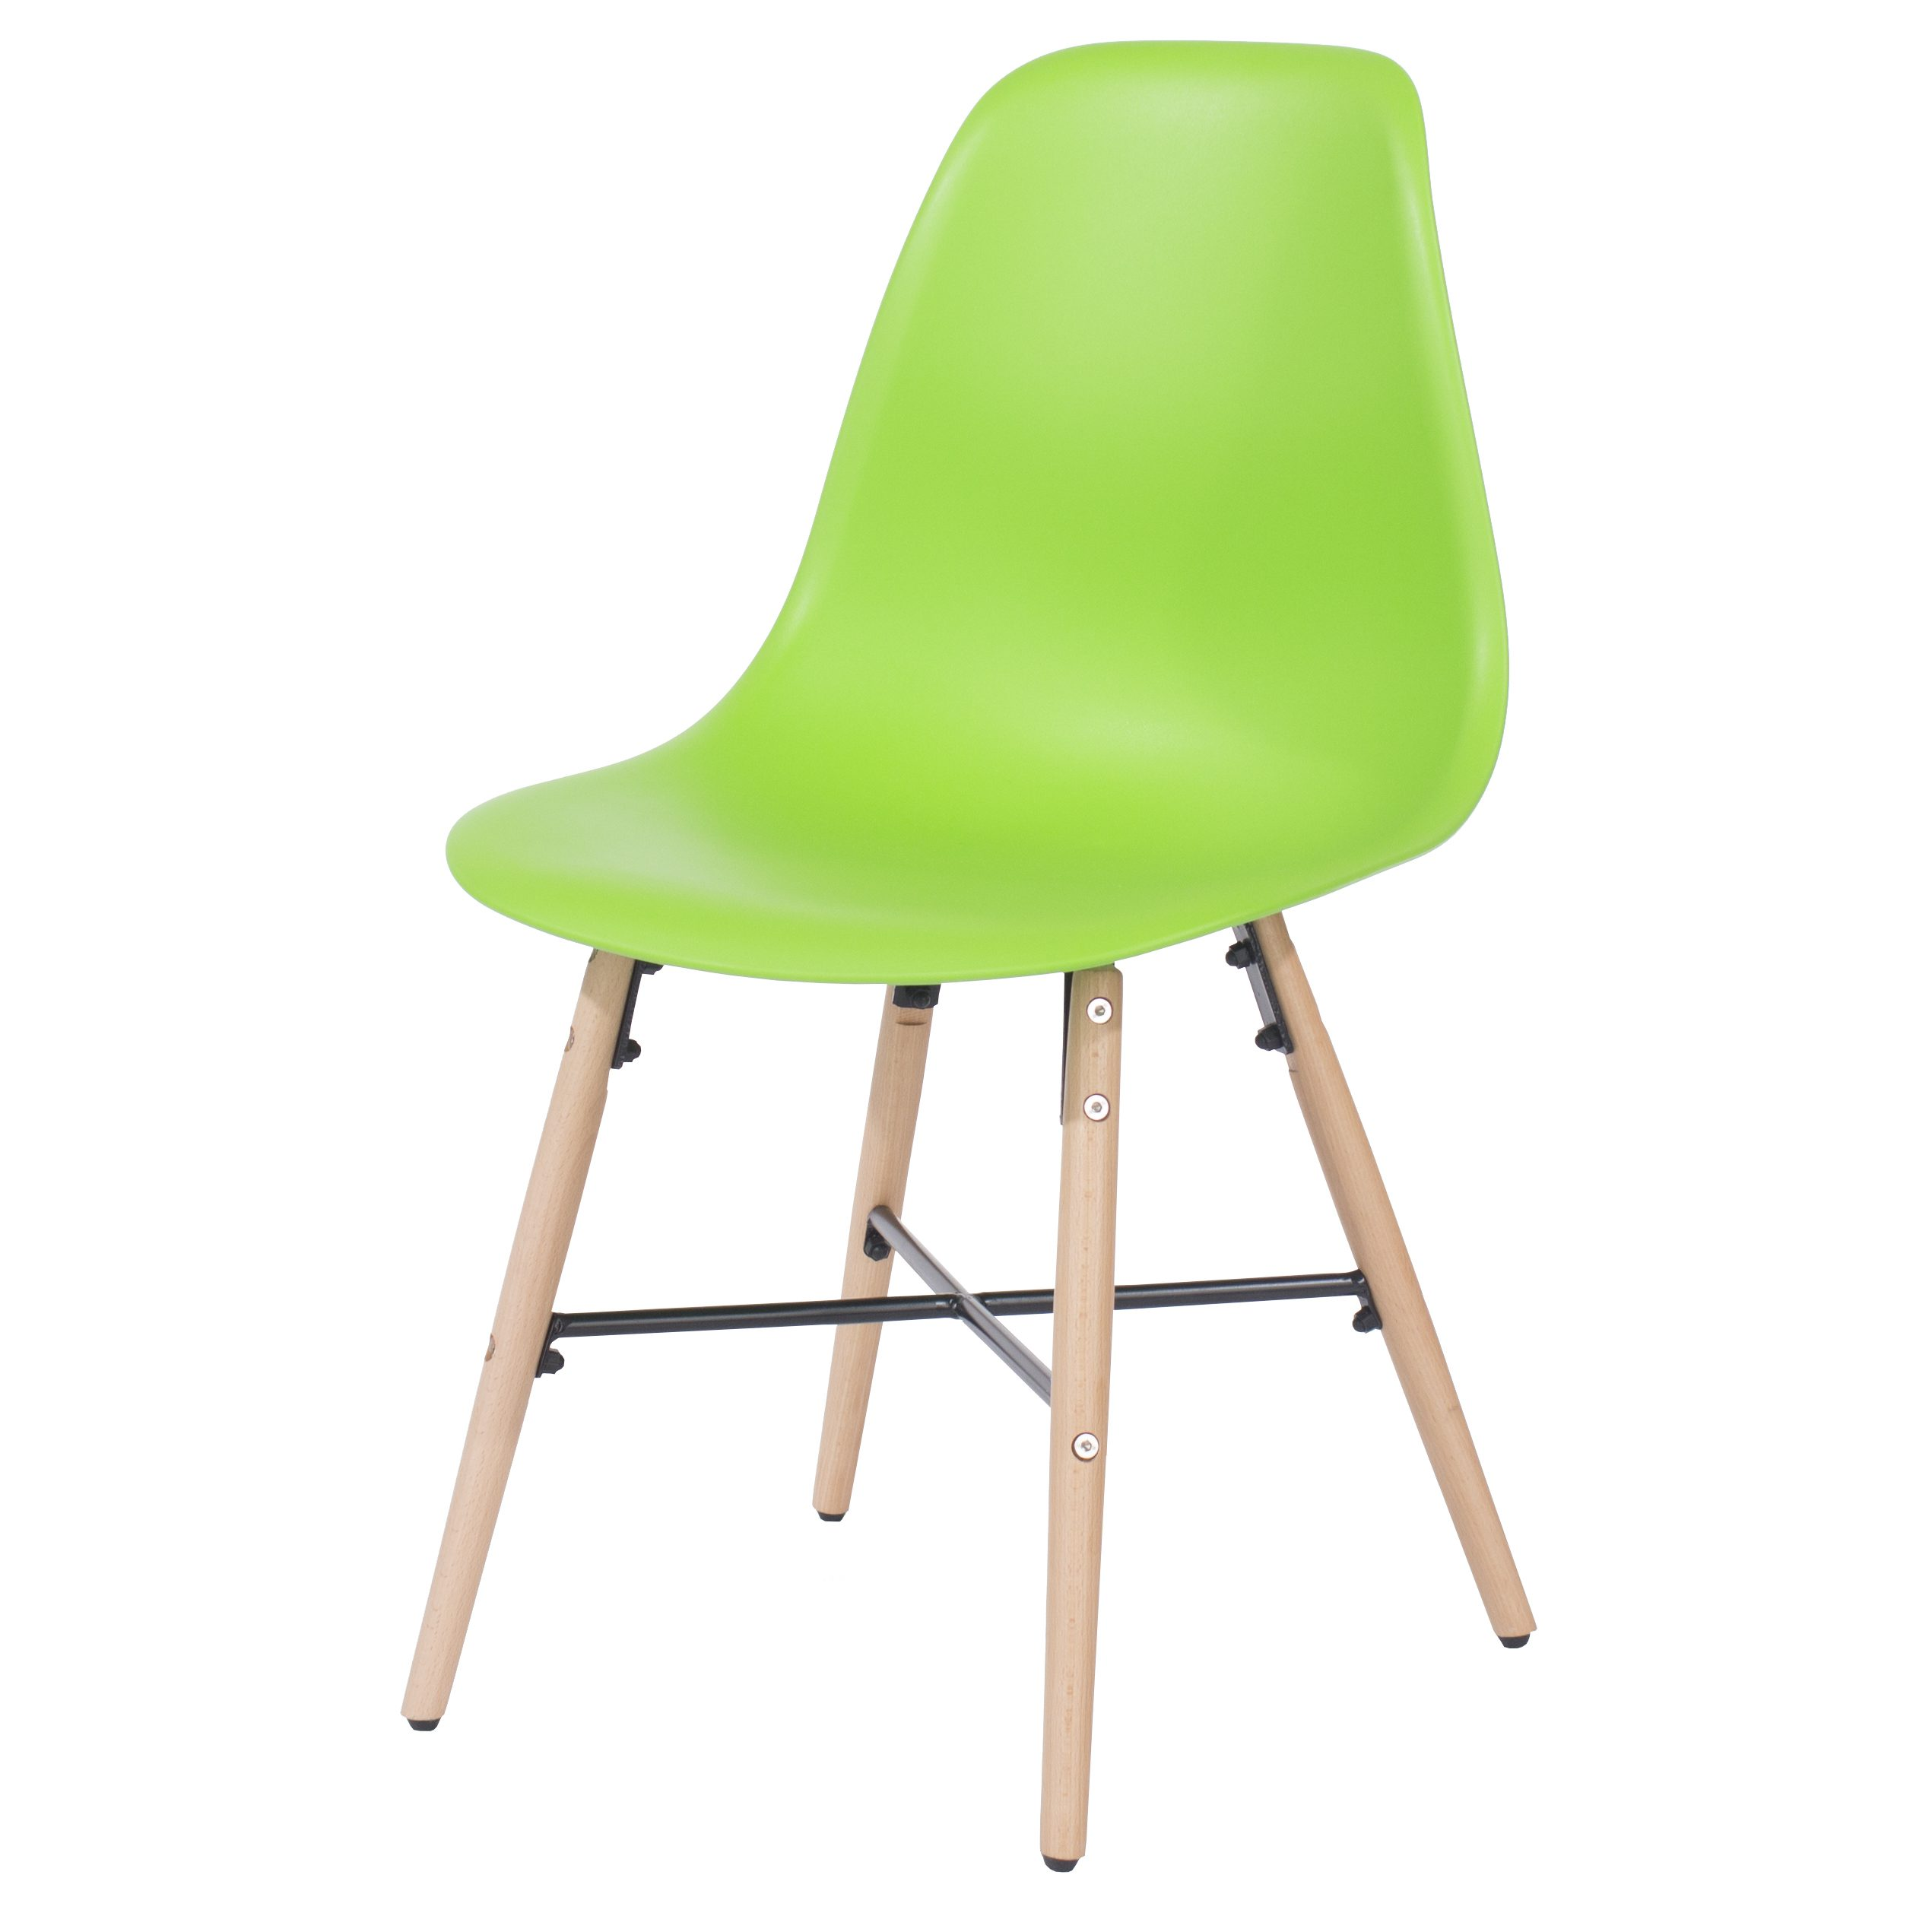 Penny green plastic chairs with wood legs & metal cross rails (pair)